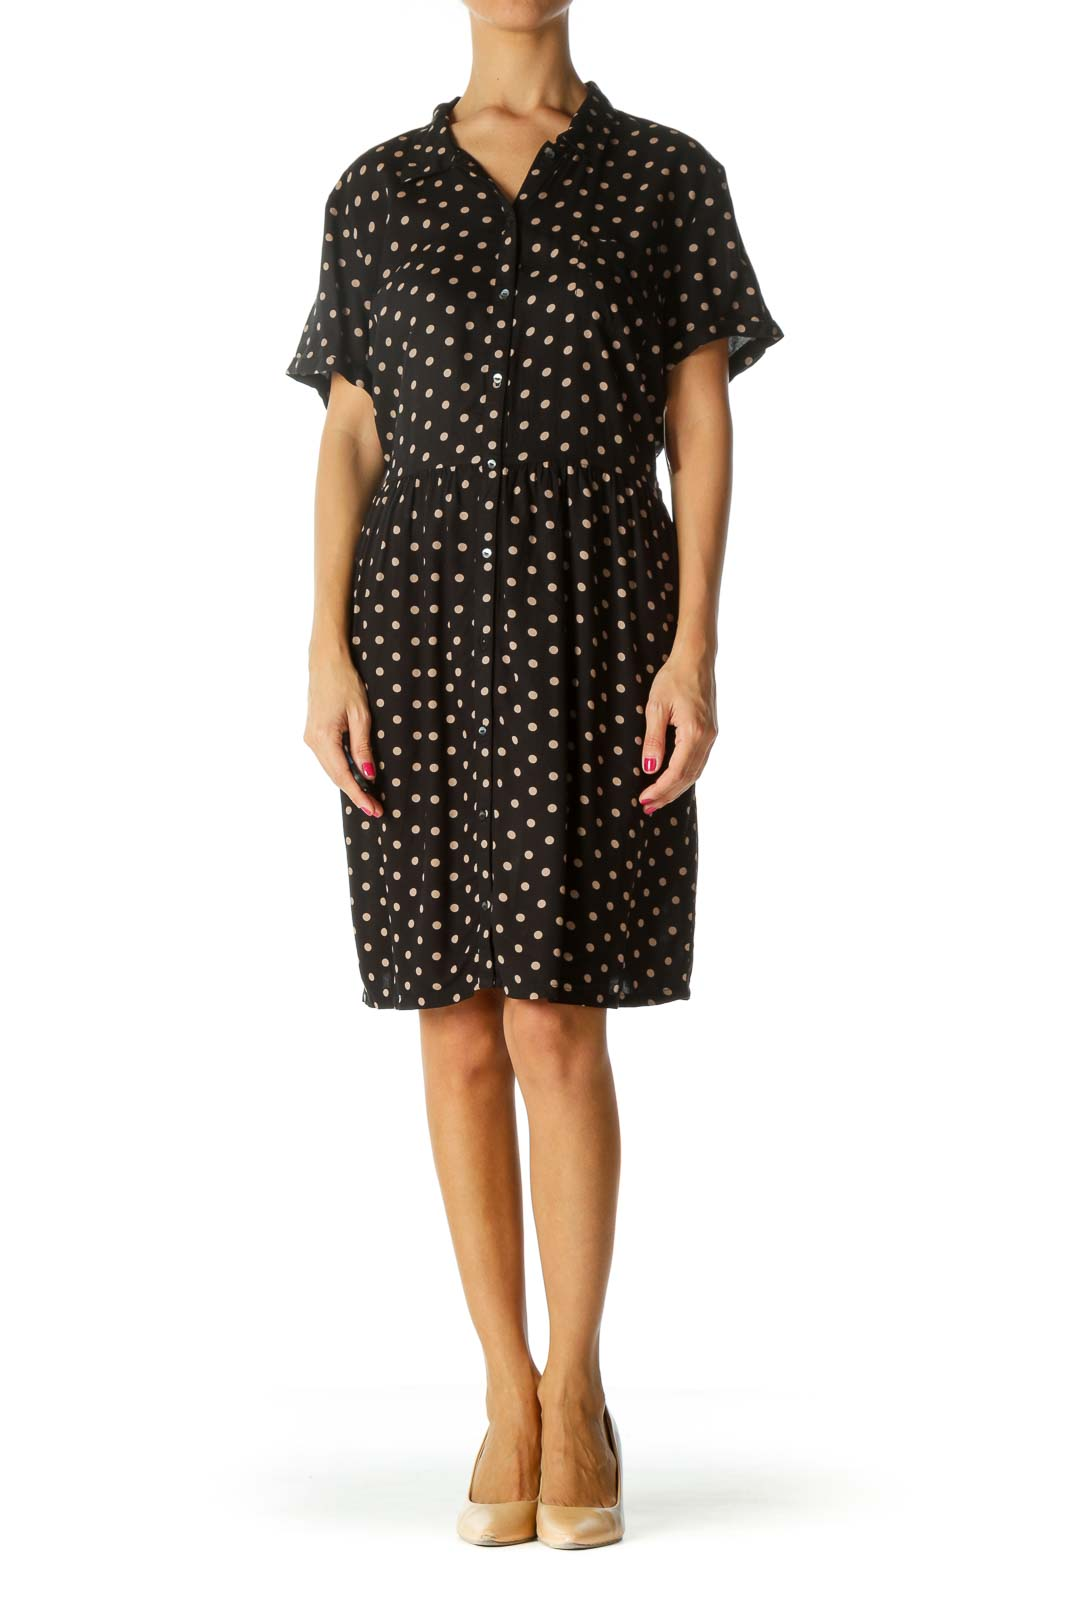 Black Polka Dot Midi Button Down Dress